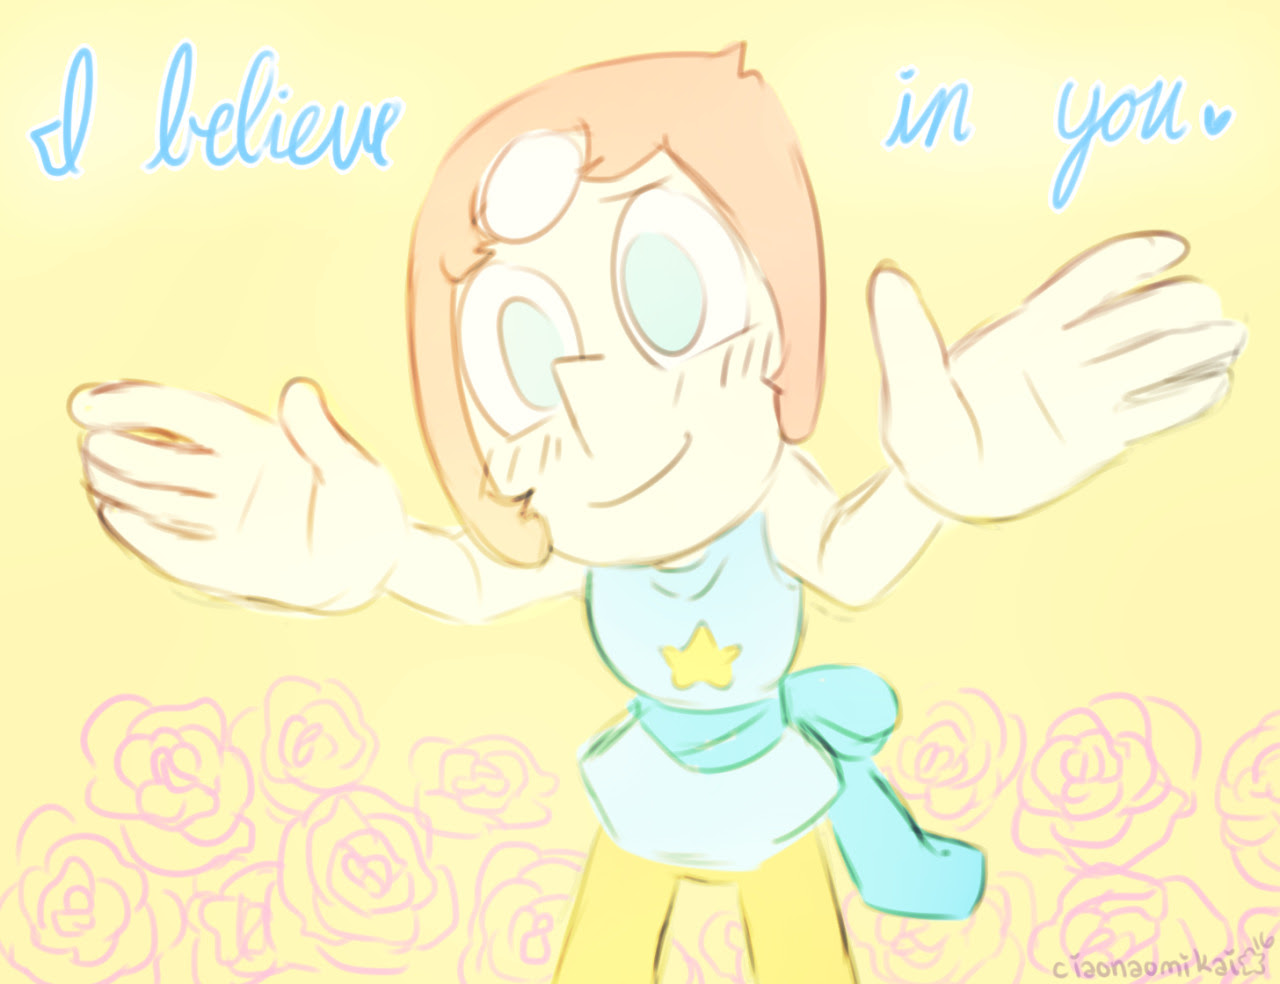 To anyone out there who are having a stressful week ahead of them cause of finals or just life in general ♡°✧